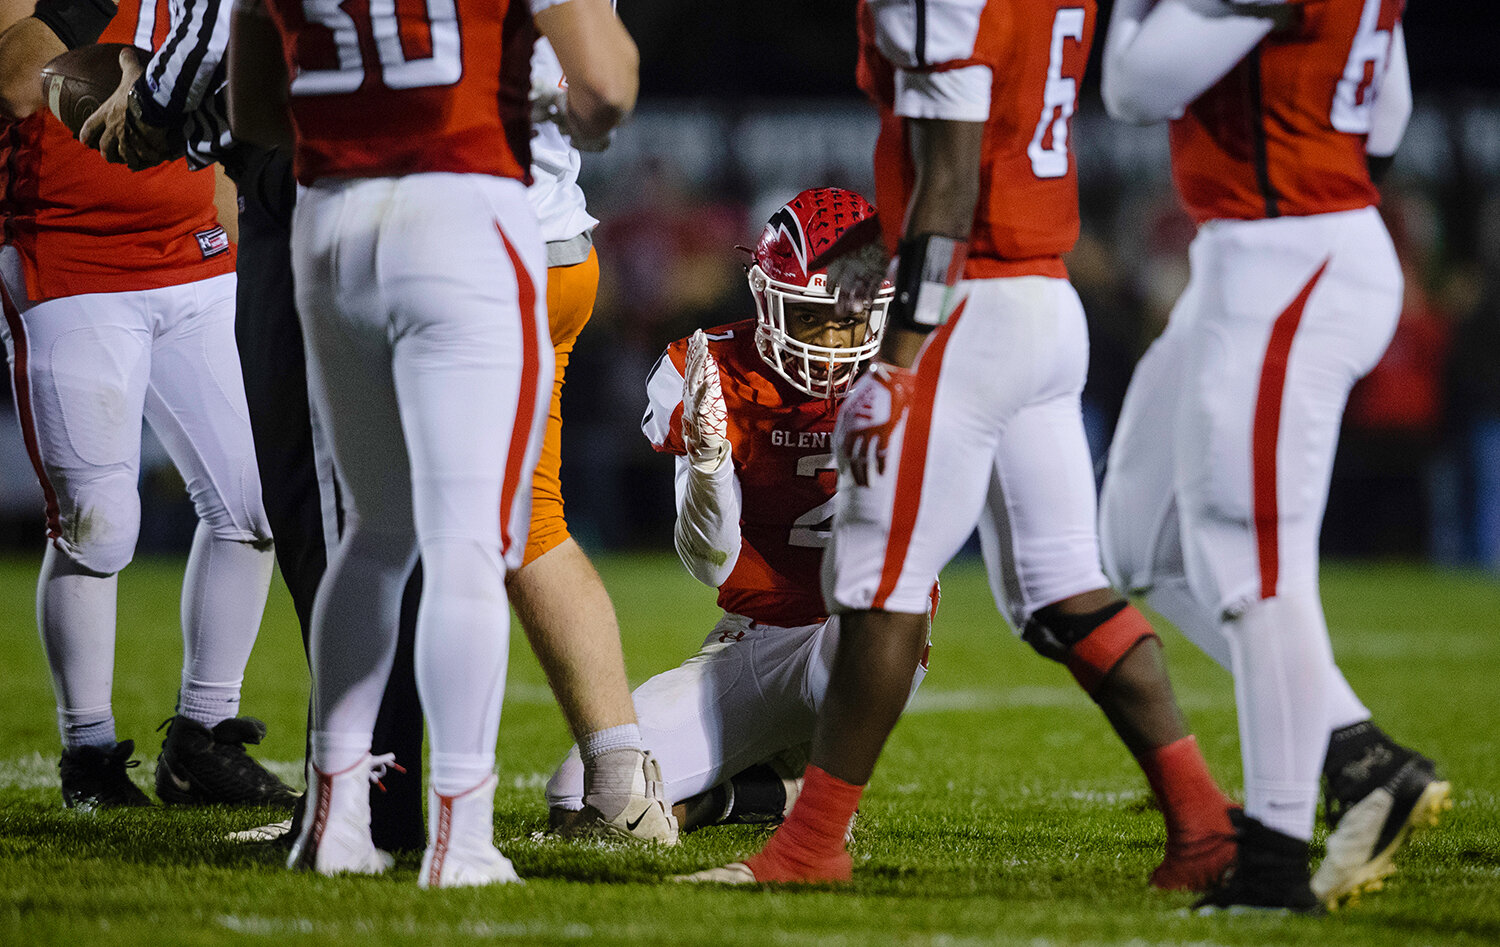 Glenwood's Jason Hansbrough (2)  reacts after fumbling the ball on a kick return against Rochester  at Glenwood High School Friday, Oct. 25, 2019. [Ted Schurter/The State Journal-Register]